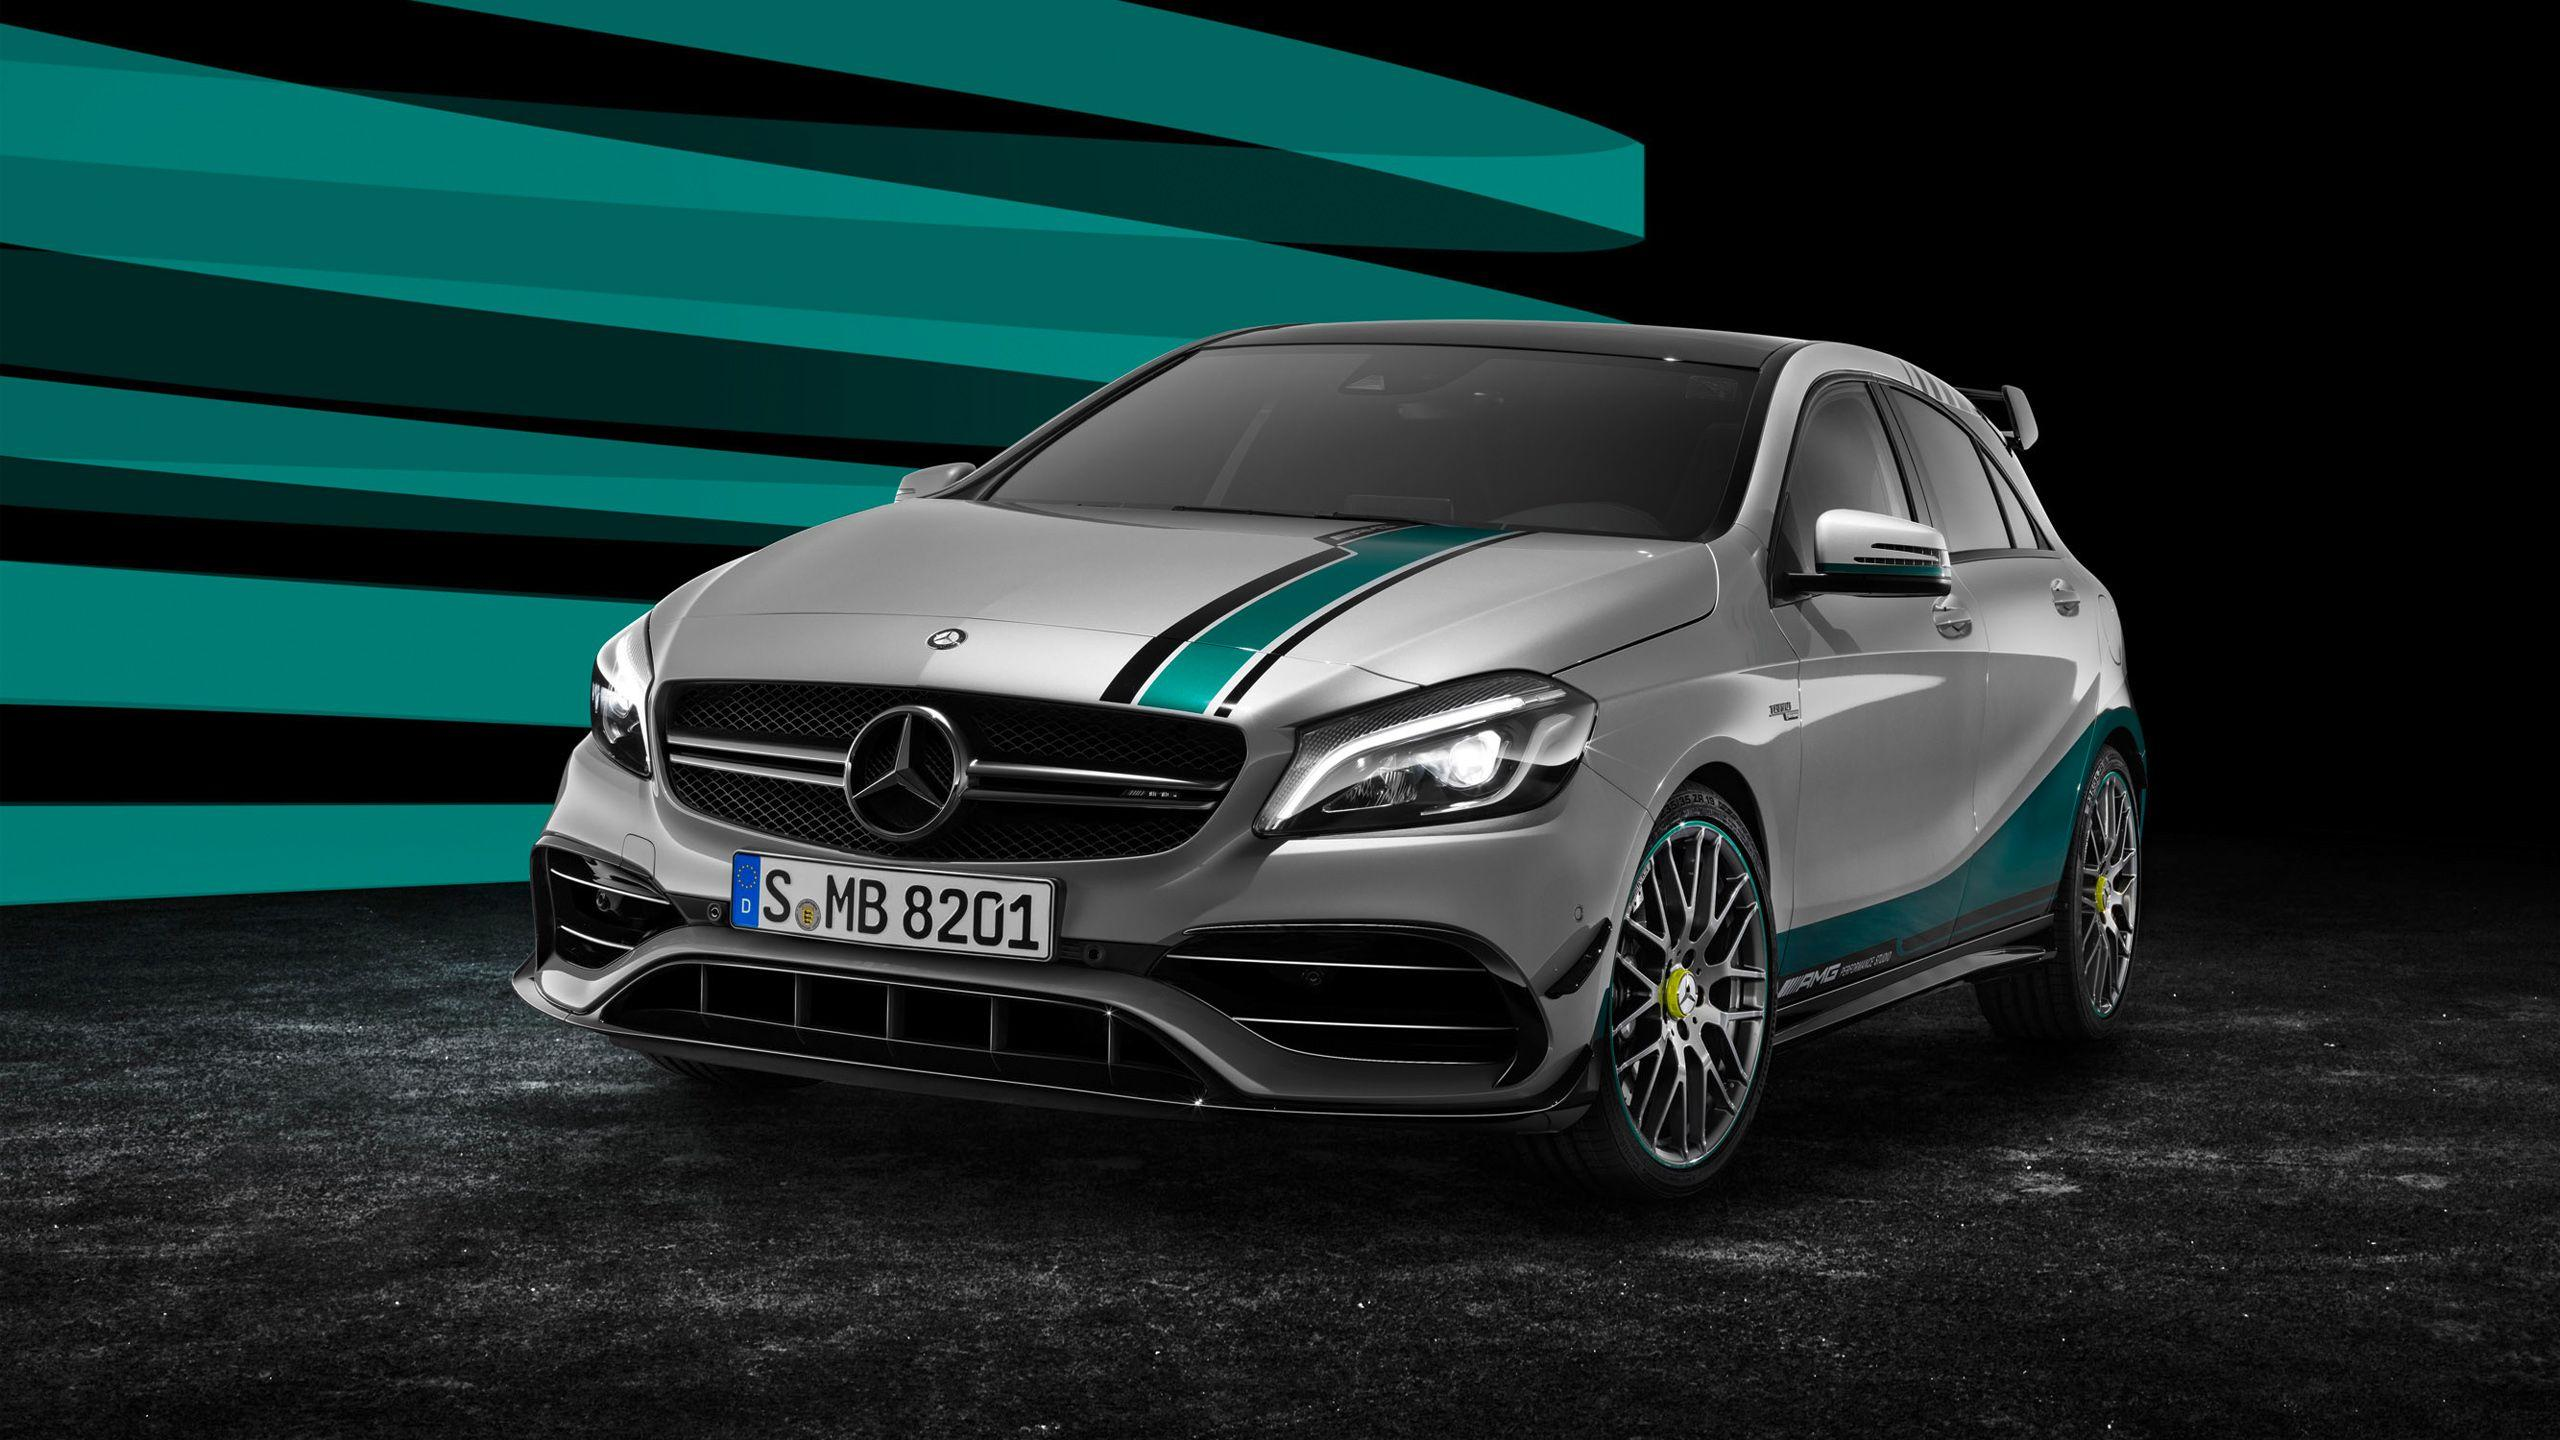 2015 Mercedes AMG A45 4matic Champions Edition Wallpapers